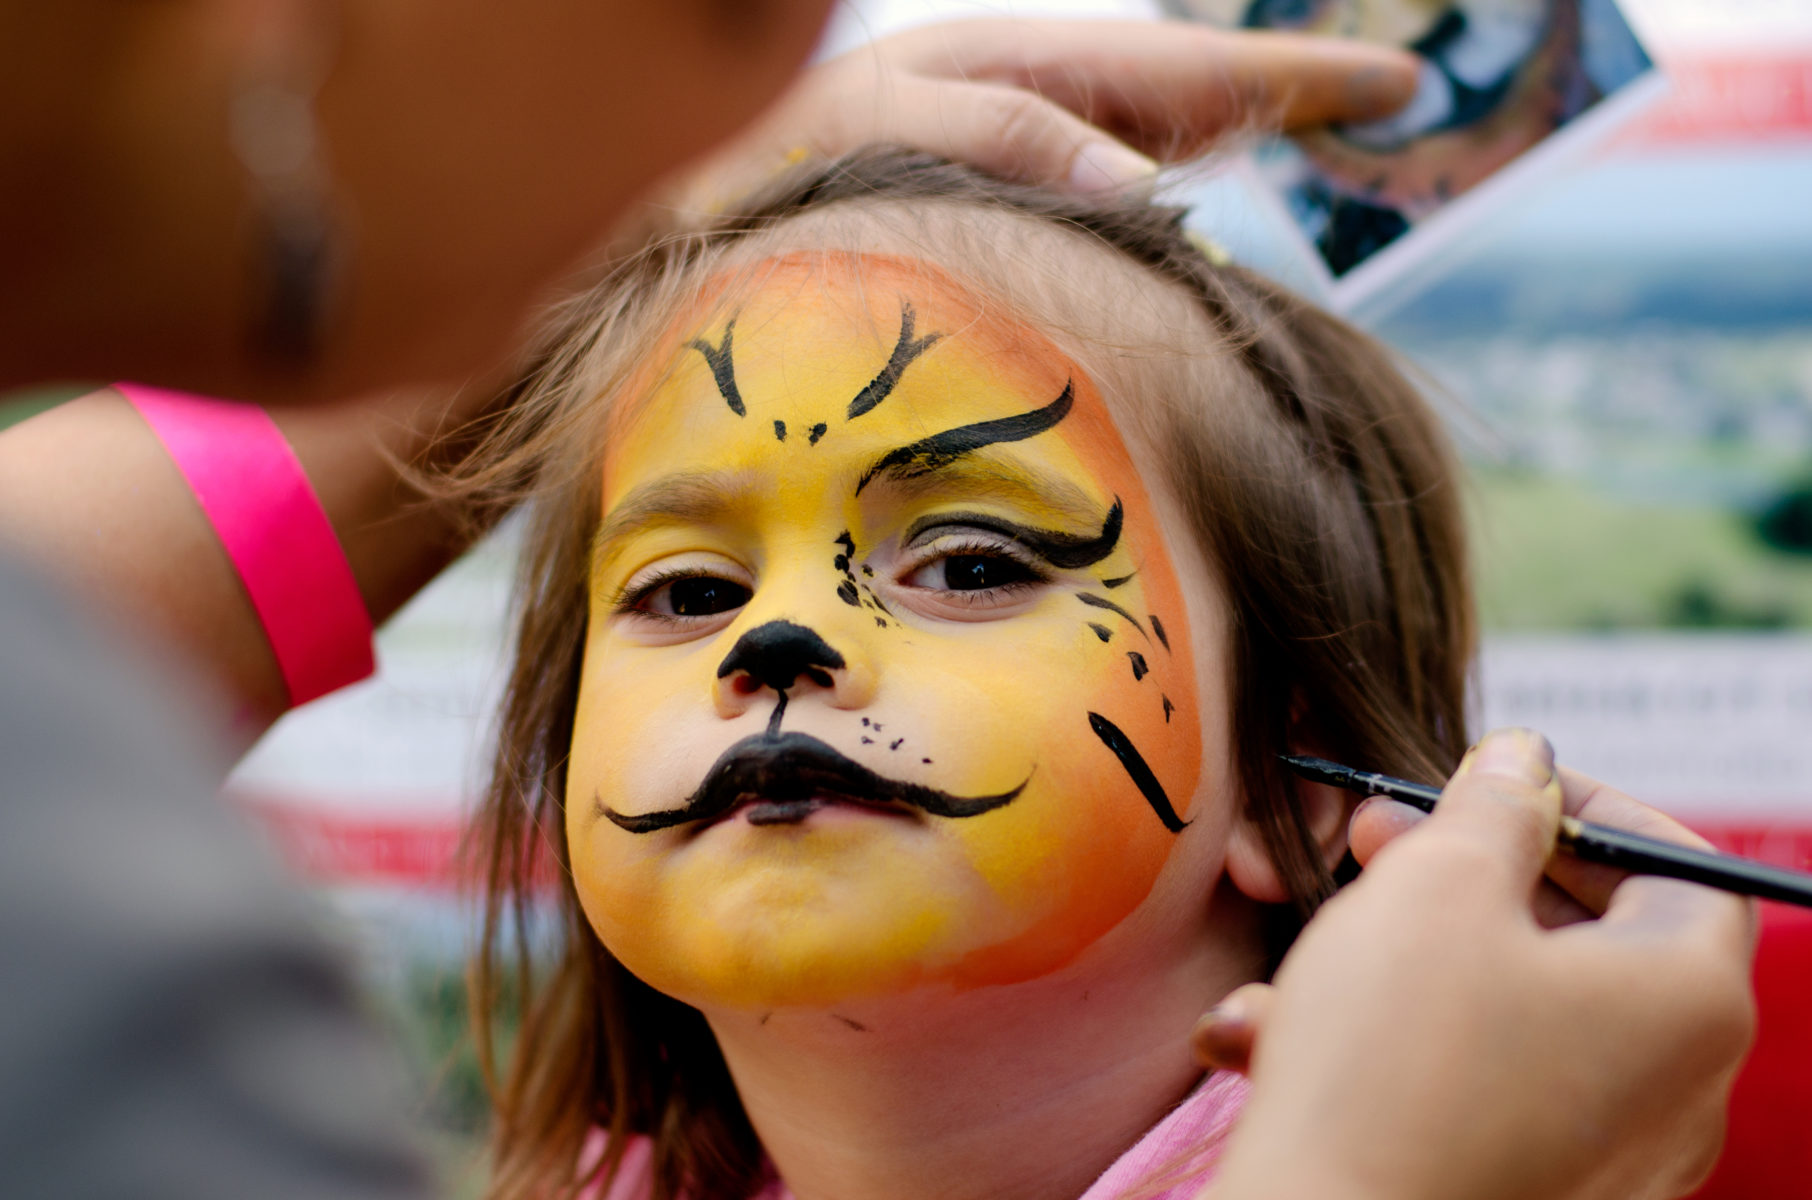 Young girl getting her face painted at art festival